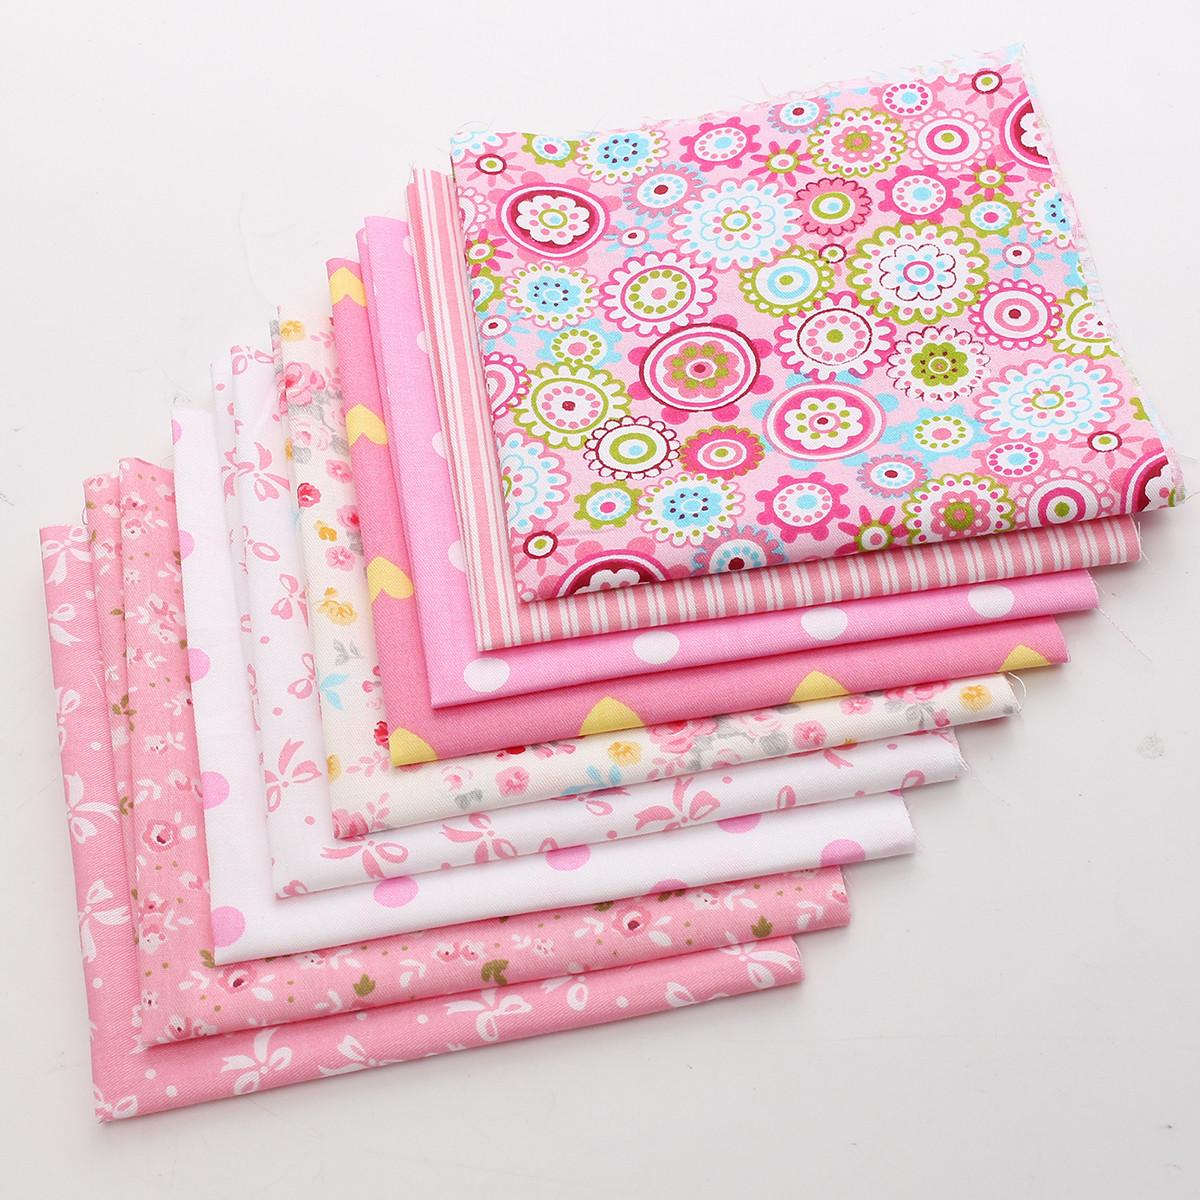 Assorted Dot Fabric Cotton Cloth Pink Material Vintage